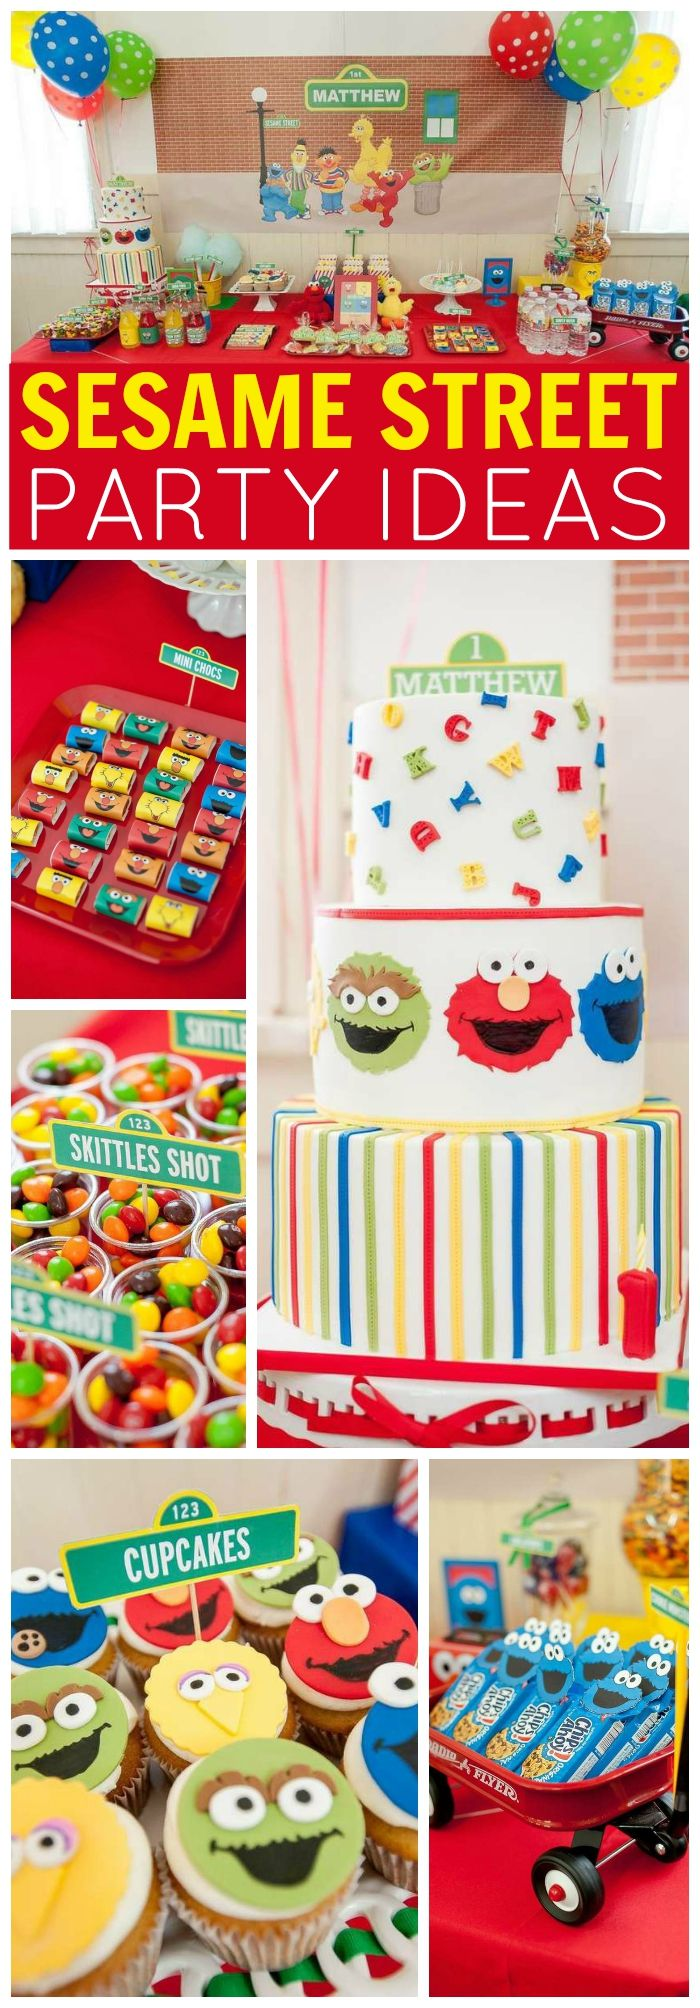 Elmo 1st birthday party ideas birthday party sesamestreet - Love This Colorful Sesame Street Birthday Party See More Party Ideas At Catchmyparty Com